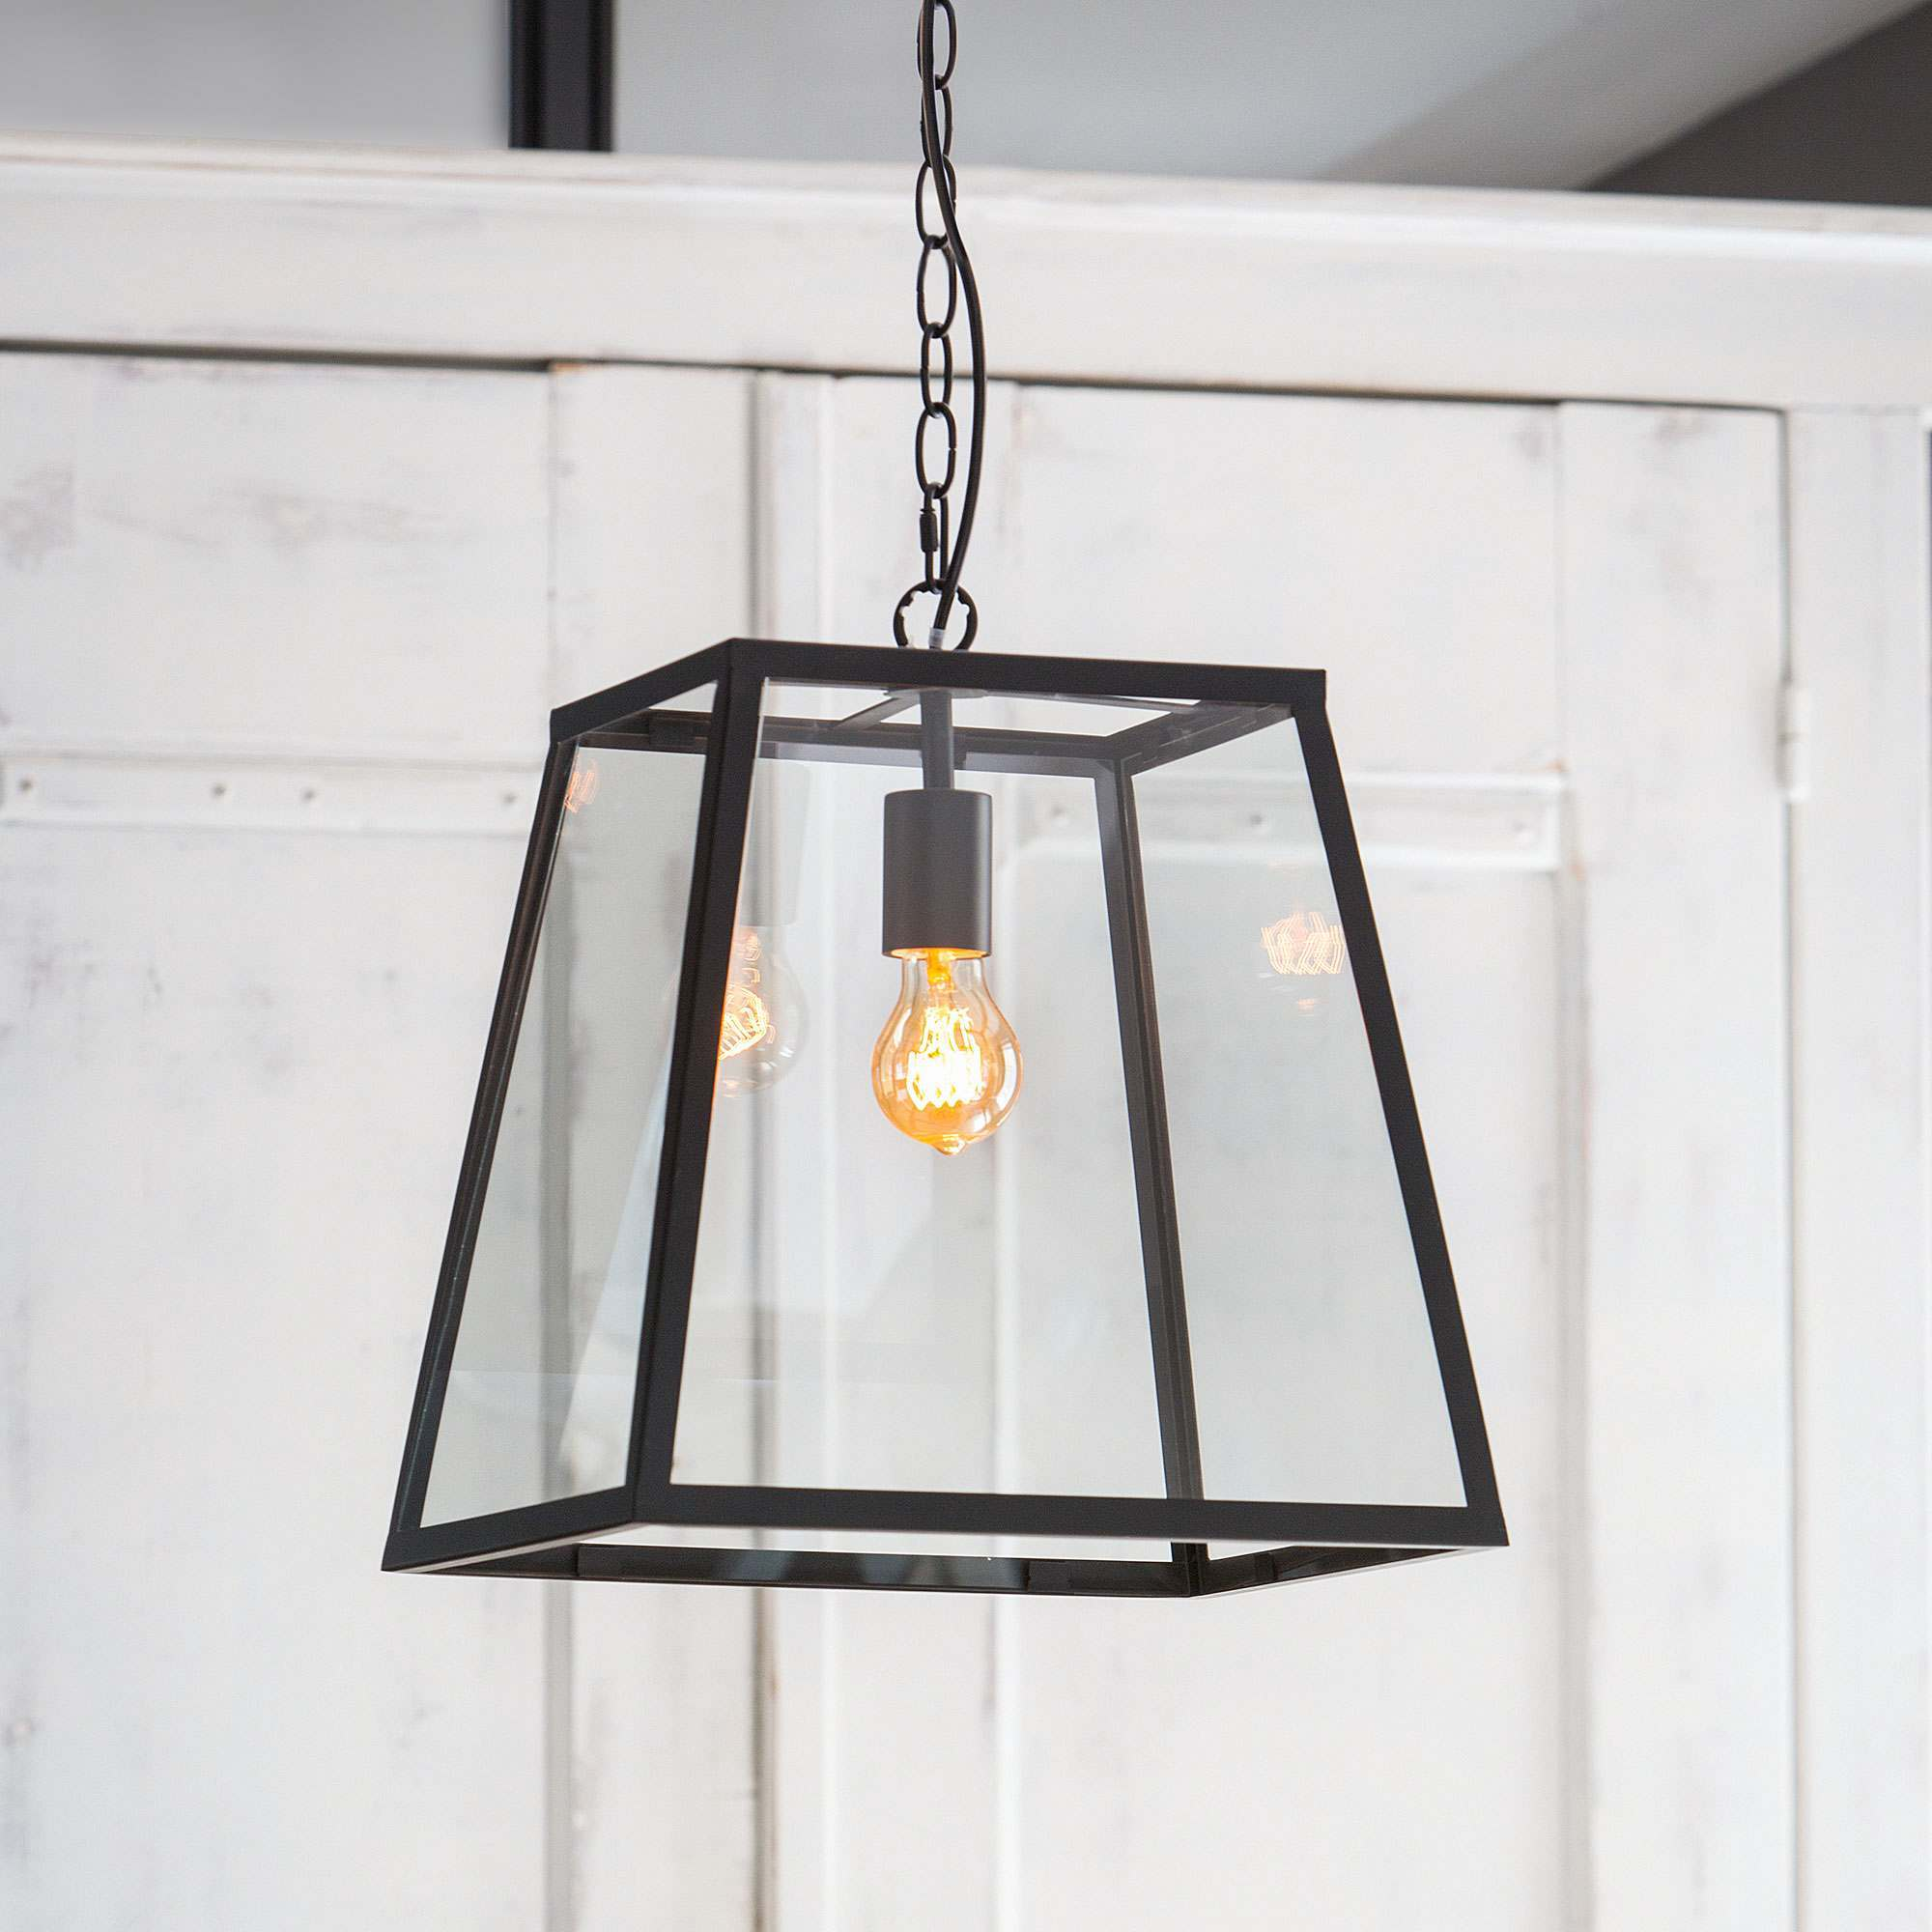 Inko Glass Lantern Pendant Light Graham Green